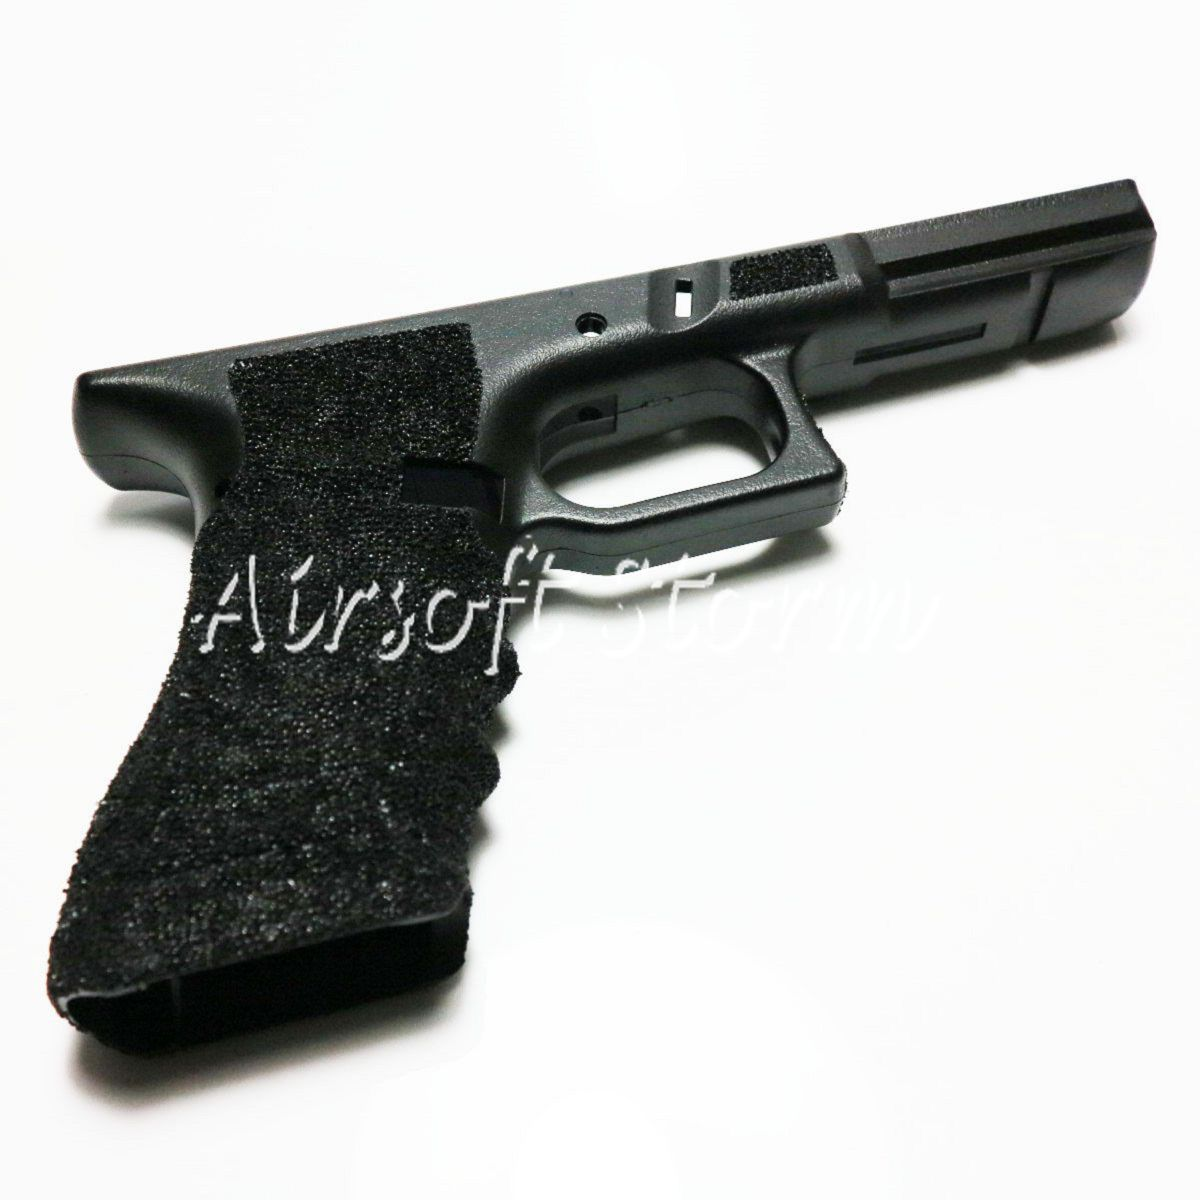 AEG Gear APS Polymer Fiber Body Lower Frame with Stippling for WE and Marui G-series AC023S